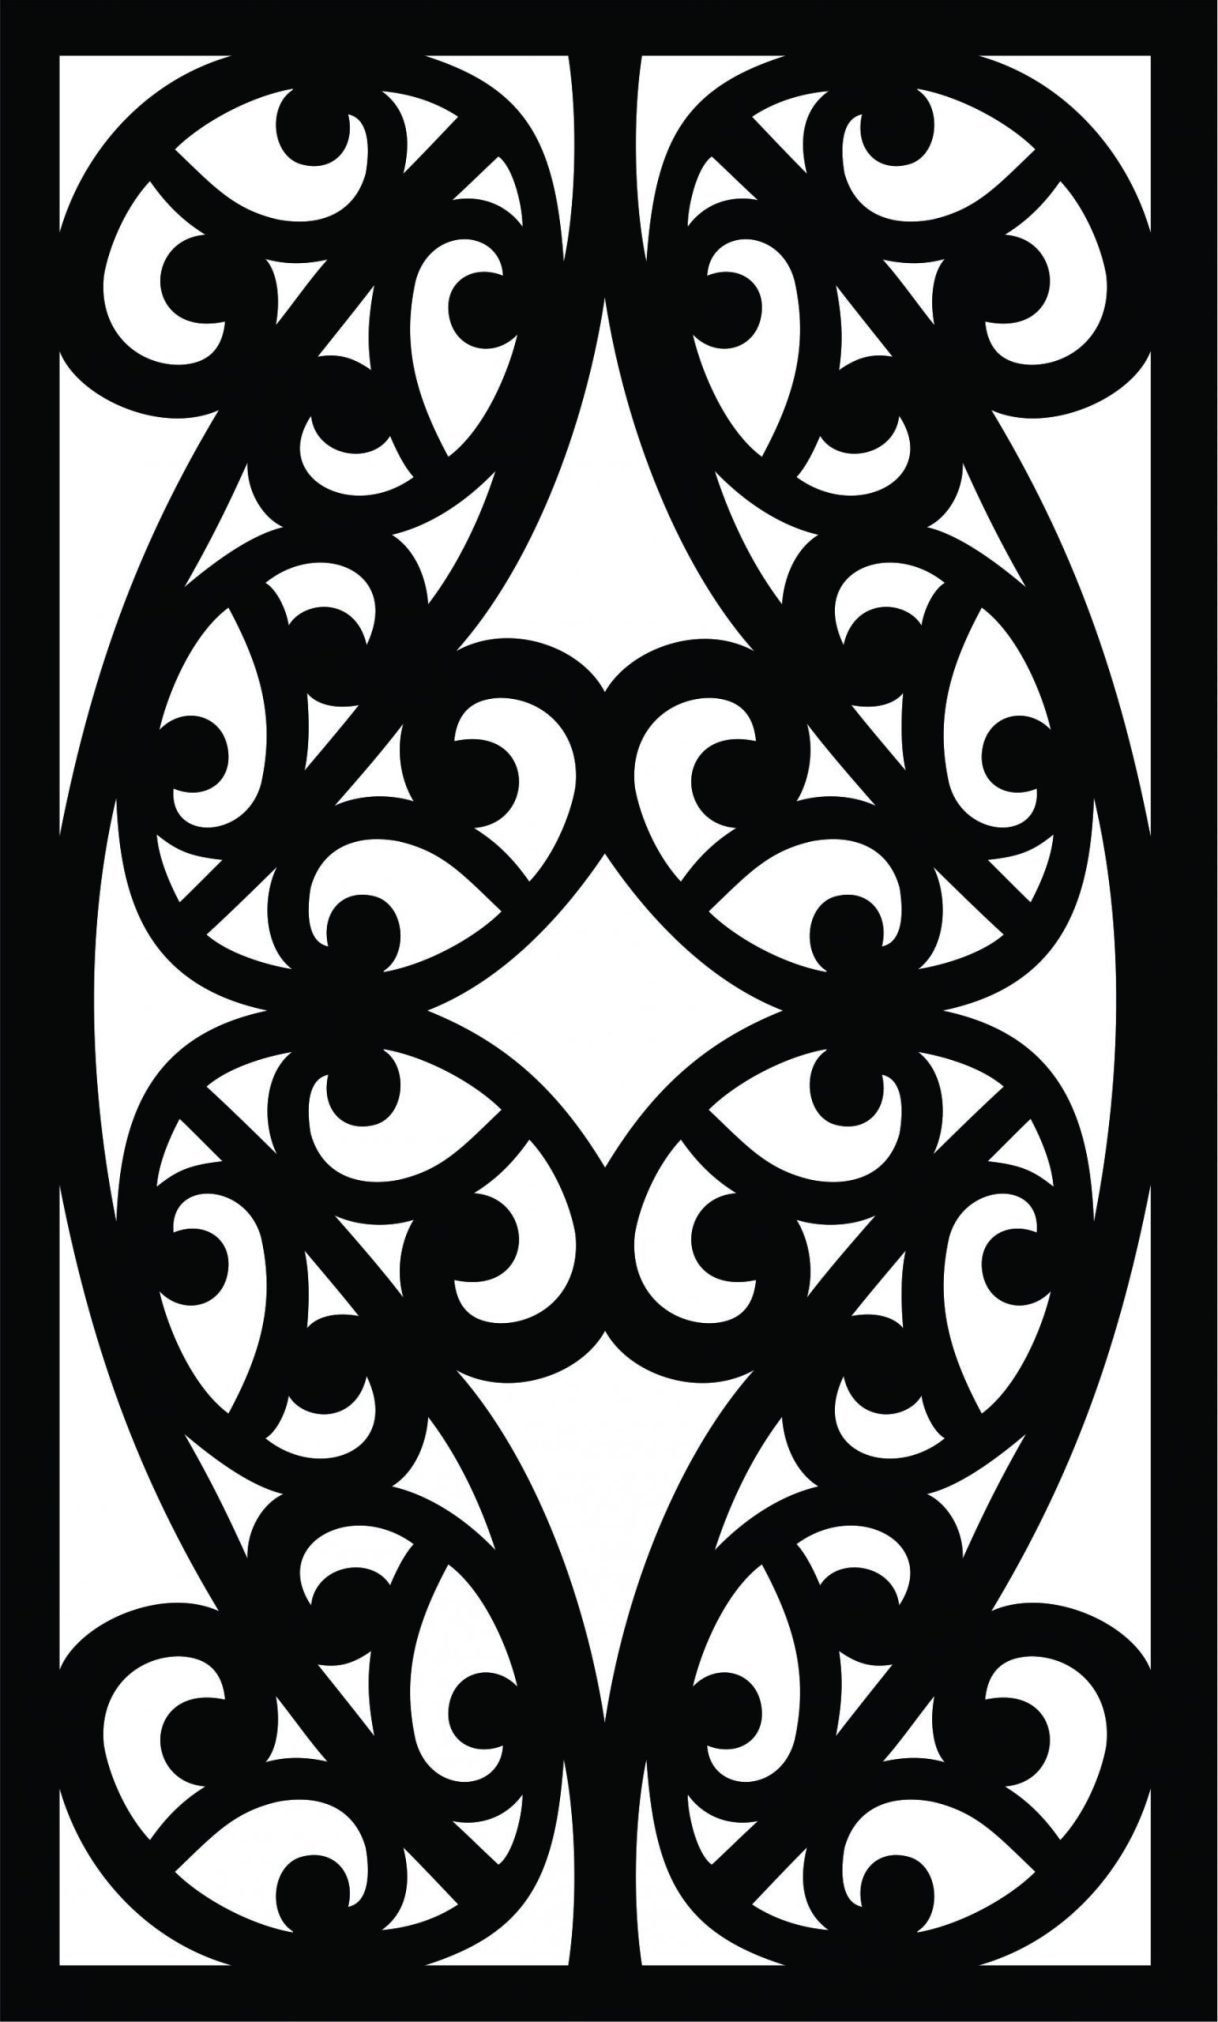 Decorative Screen Patterns For Laser Cutting 43 Free DXF File